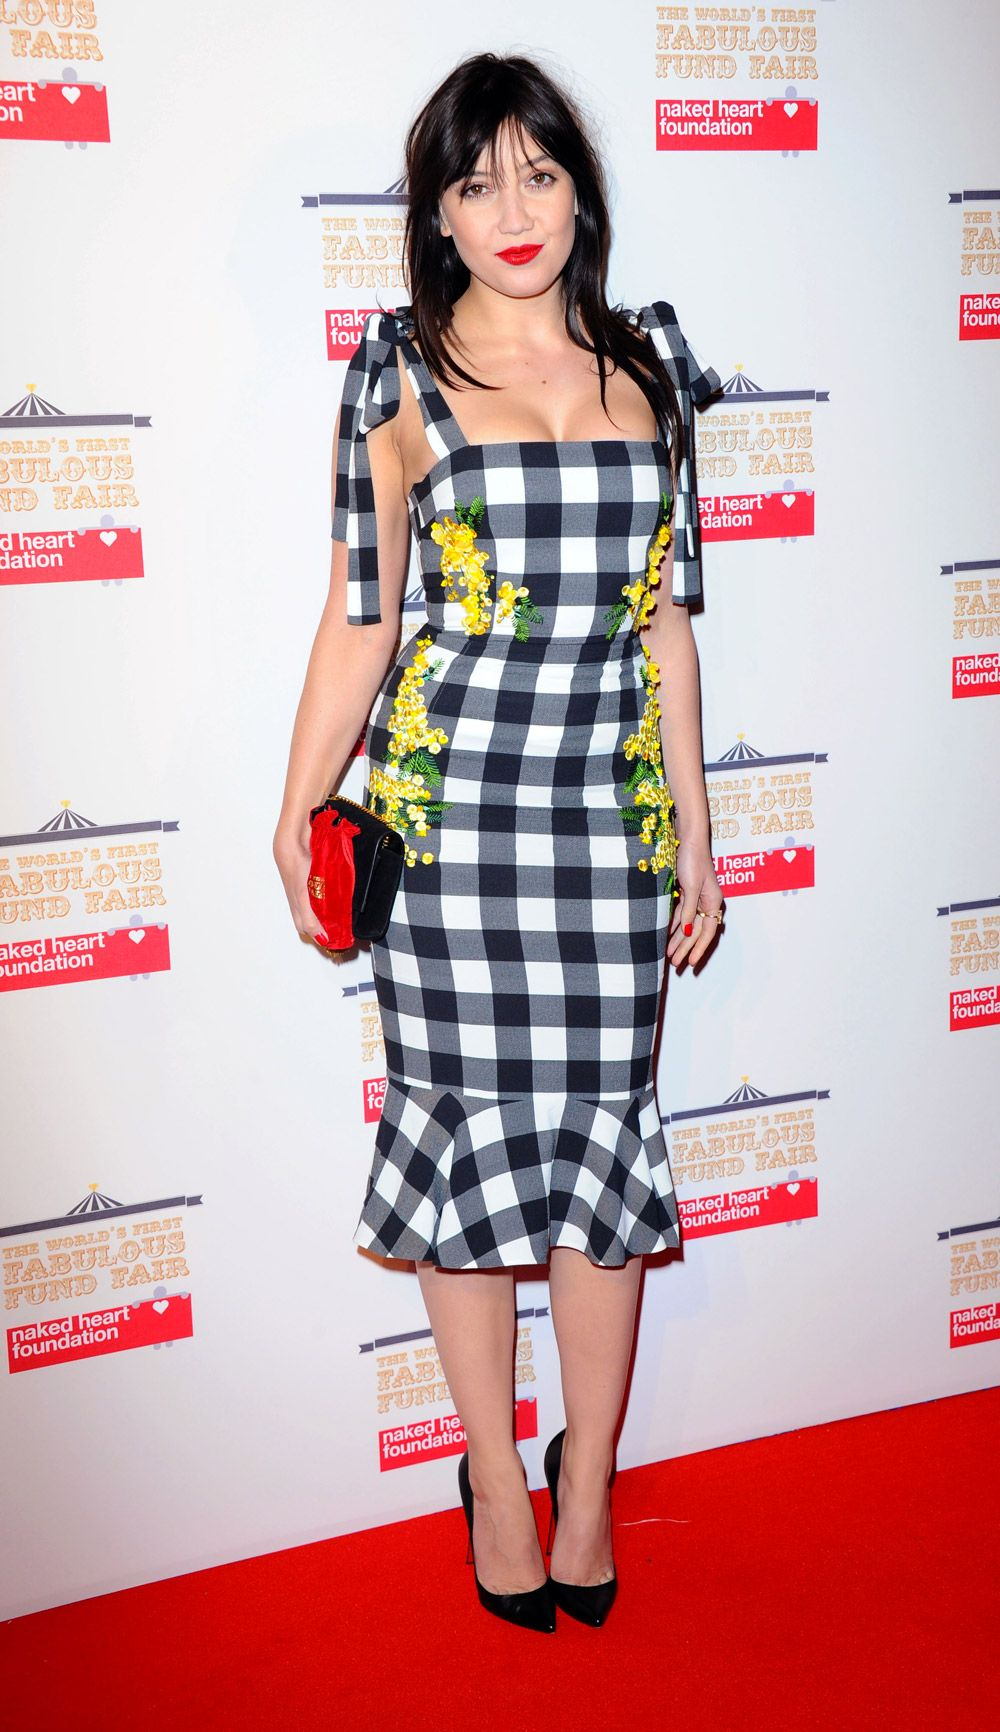 Daisy Lowe wearing Dolce&Gabbana to attend The World's First Fabulous Fund Fair in aid of The Naked Heart Foundation in London on February 24, 2015.